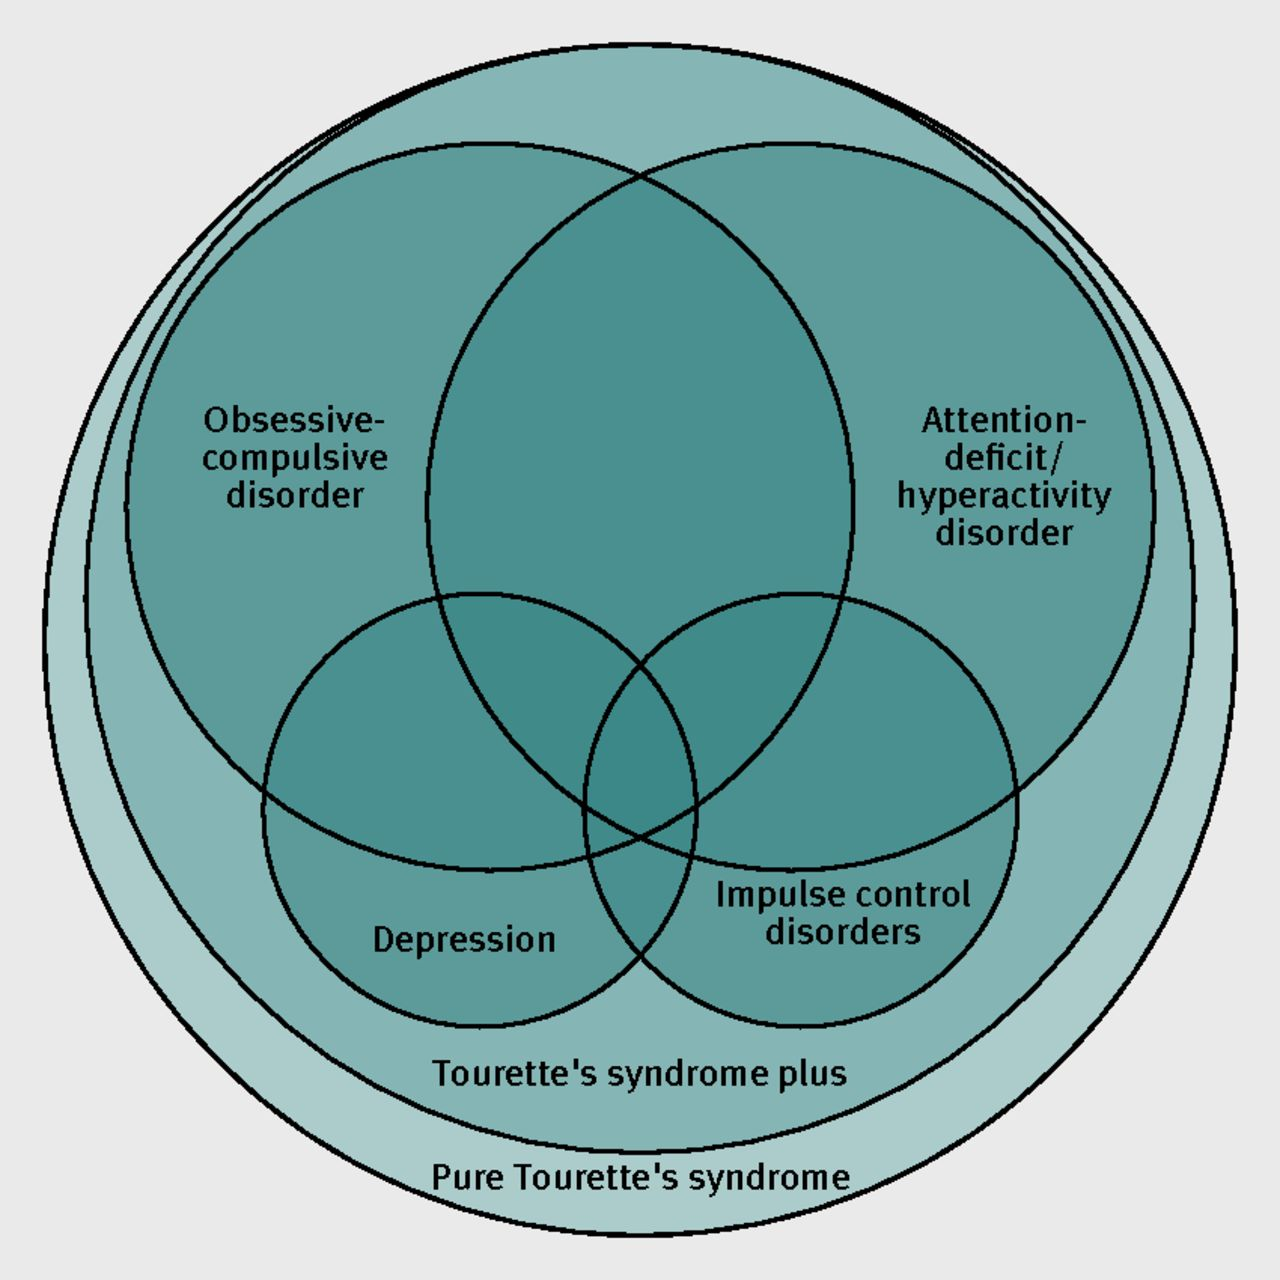 Is ADHD Overdiagnosed? Yes & No